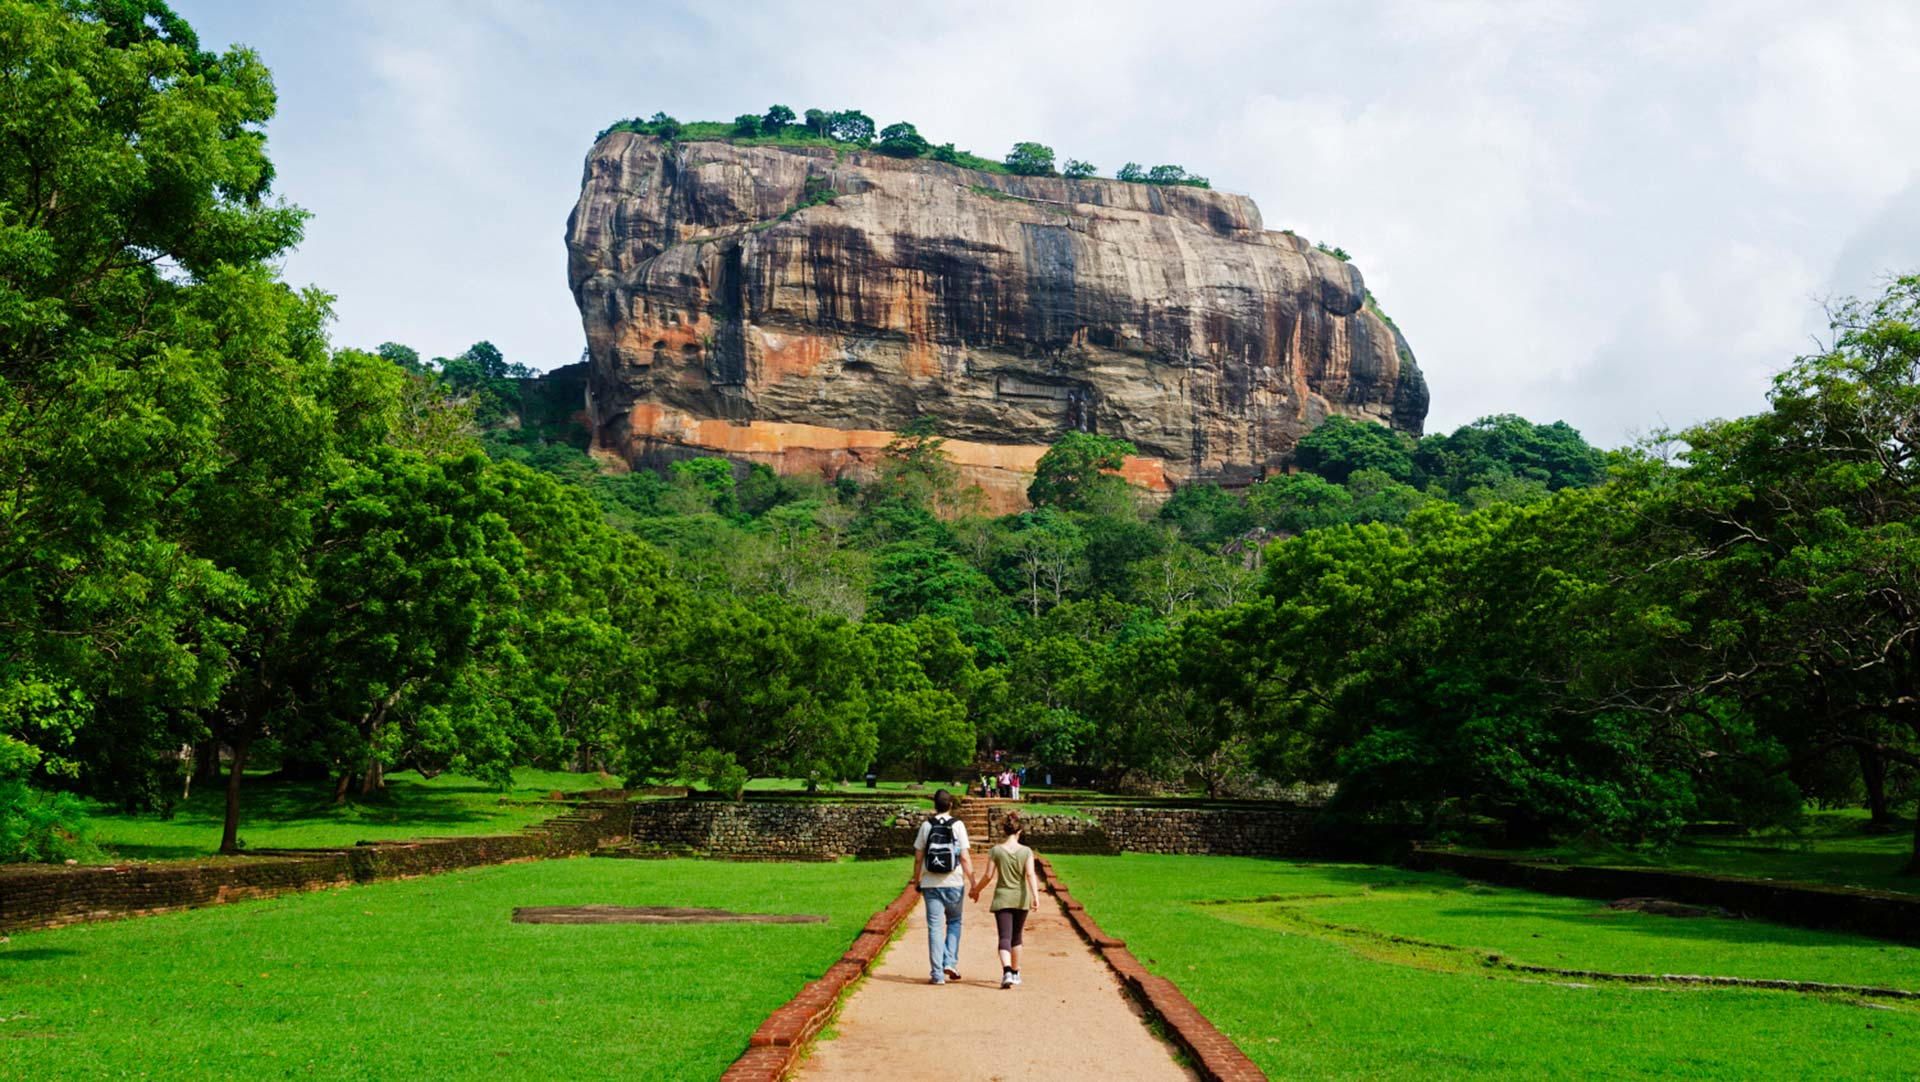 The rock fortress of Sigiriya in Sri Lanka's North Central Province